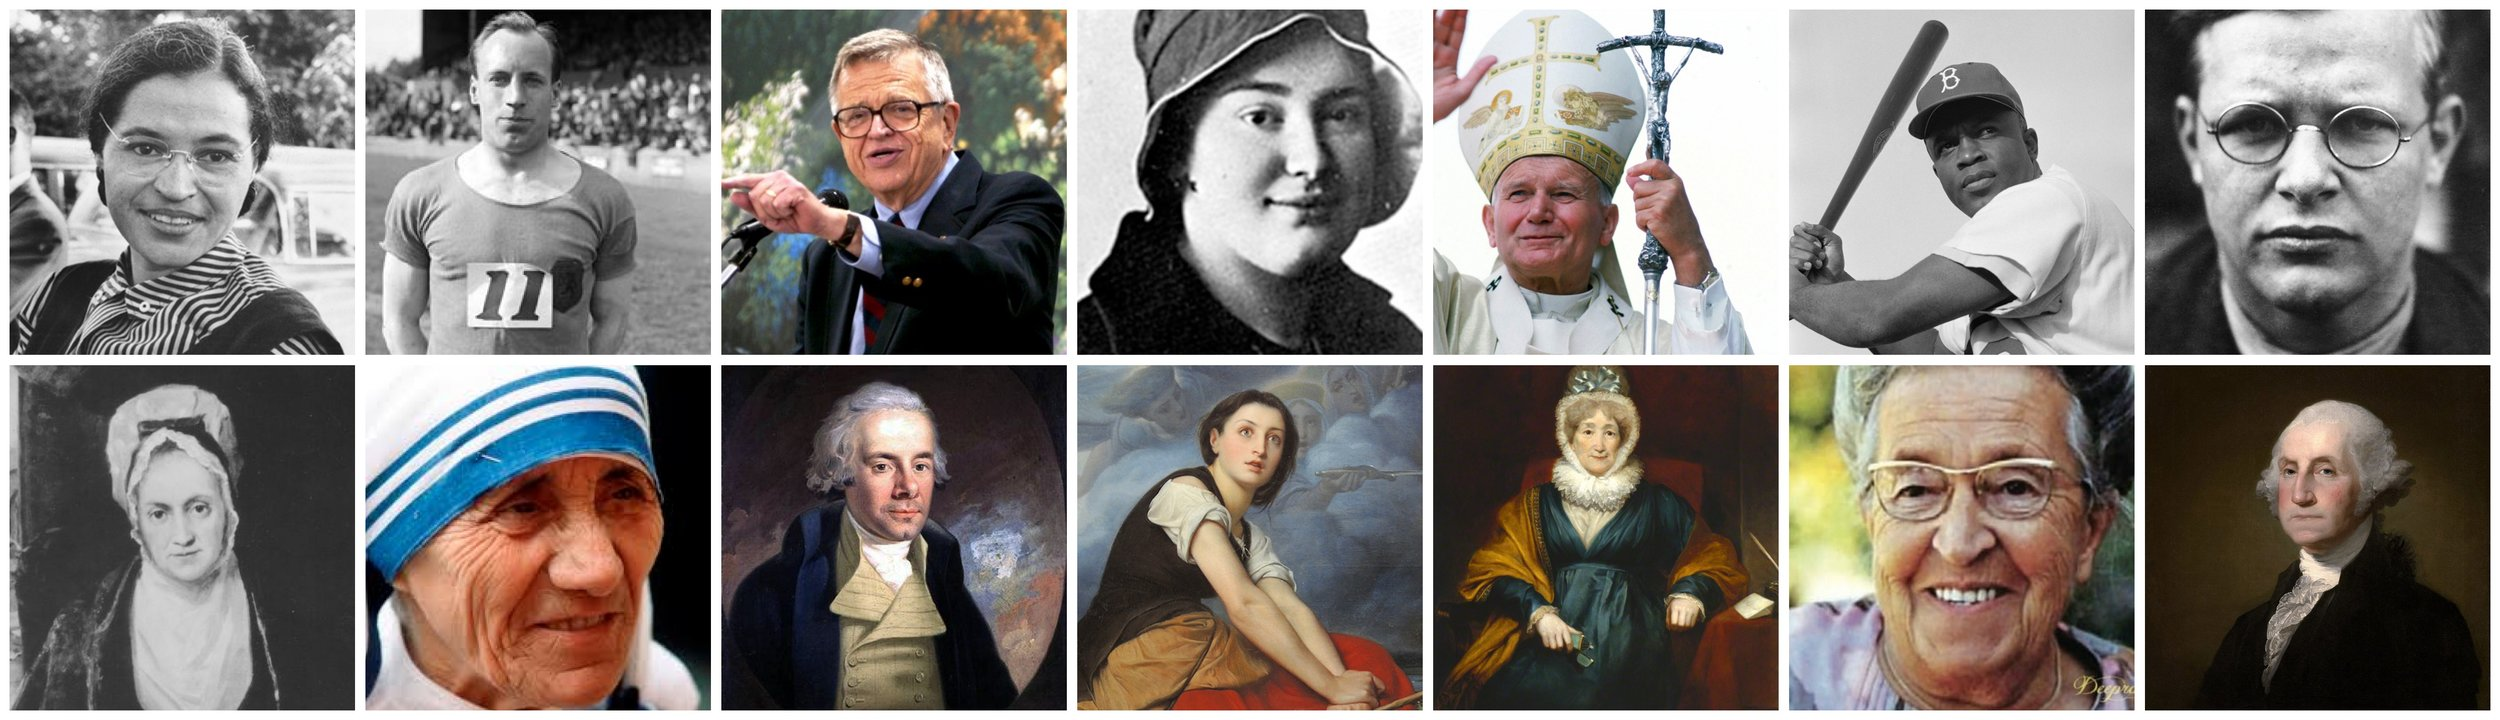 We're excited to learn more about these 14 incredible people: Rosa Parks, Eric Liddell, Charles Colson, Saint Maria of Paris, Pope John Paul II, Jackie Robinson, Dietrich Bonhoeffer, Suzanna Wesley, Mother Teresa, William Wilberforce, Joan of Arc, Hannah More, Corrie ten Boom, George Washington